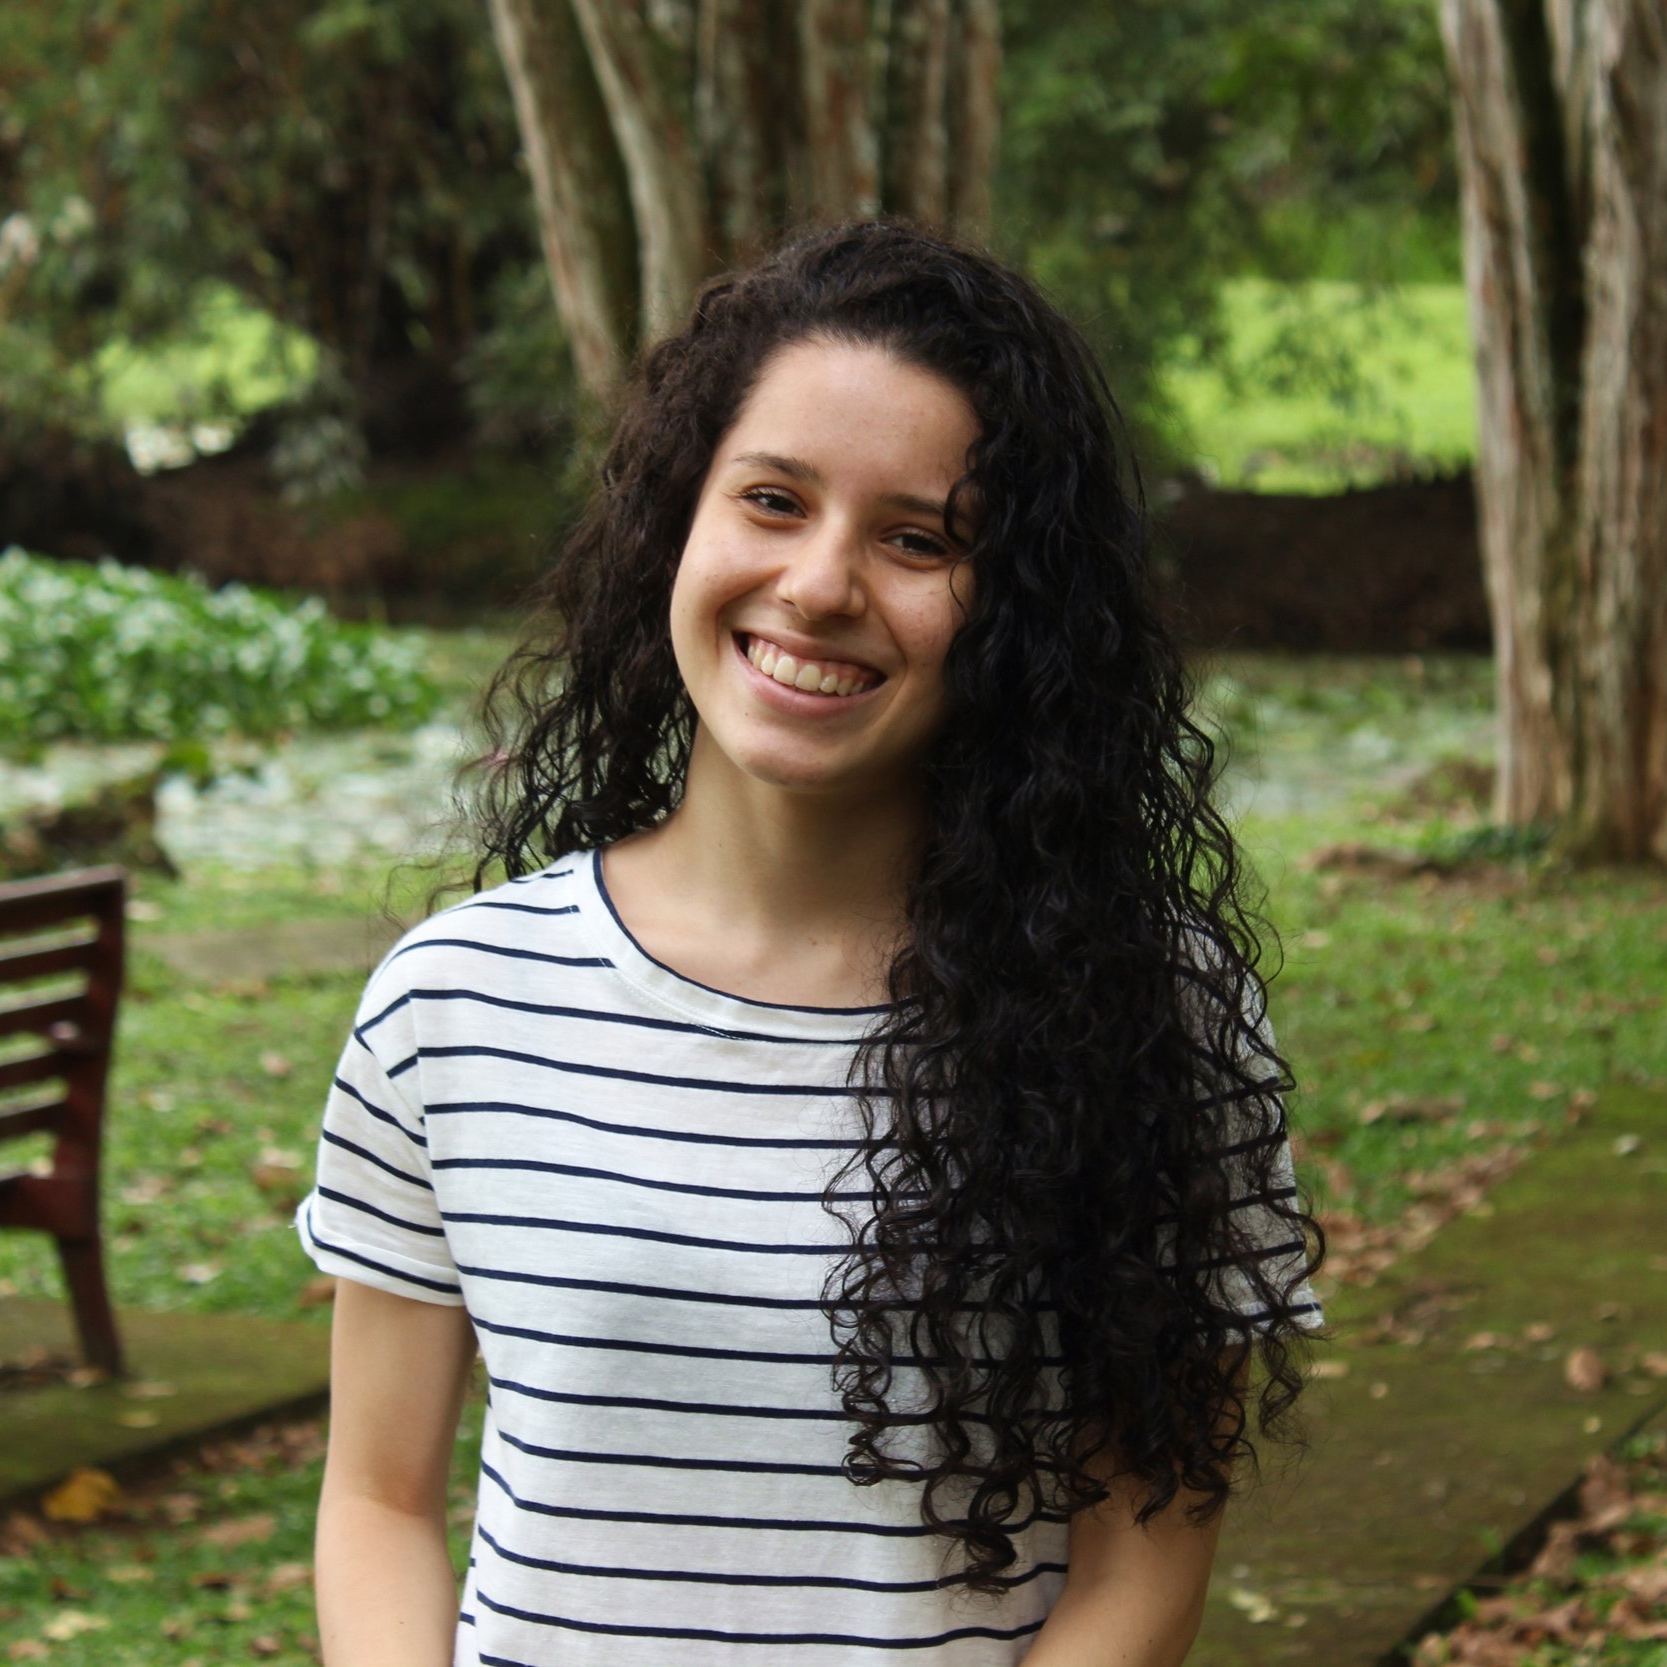 Valeria Dittel Tortós , Electromechanical Engineering student at Costa Rica Institute of Technology  From Cartago, Costa Rica